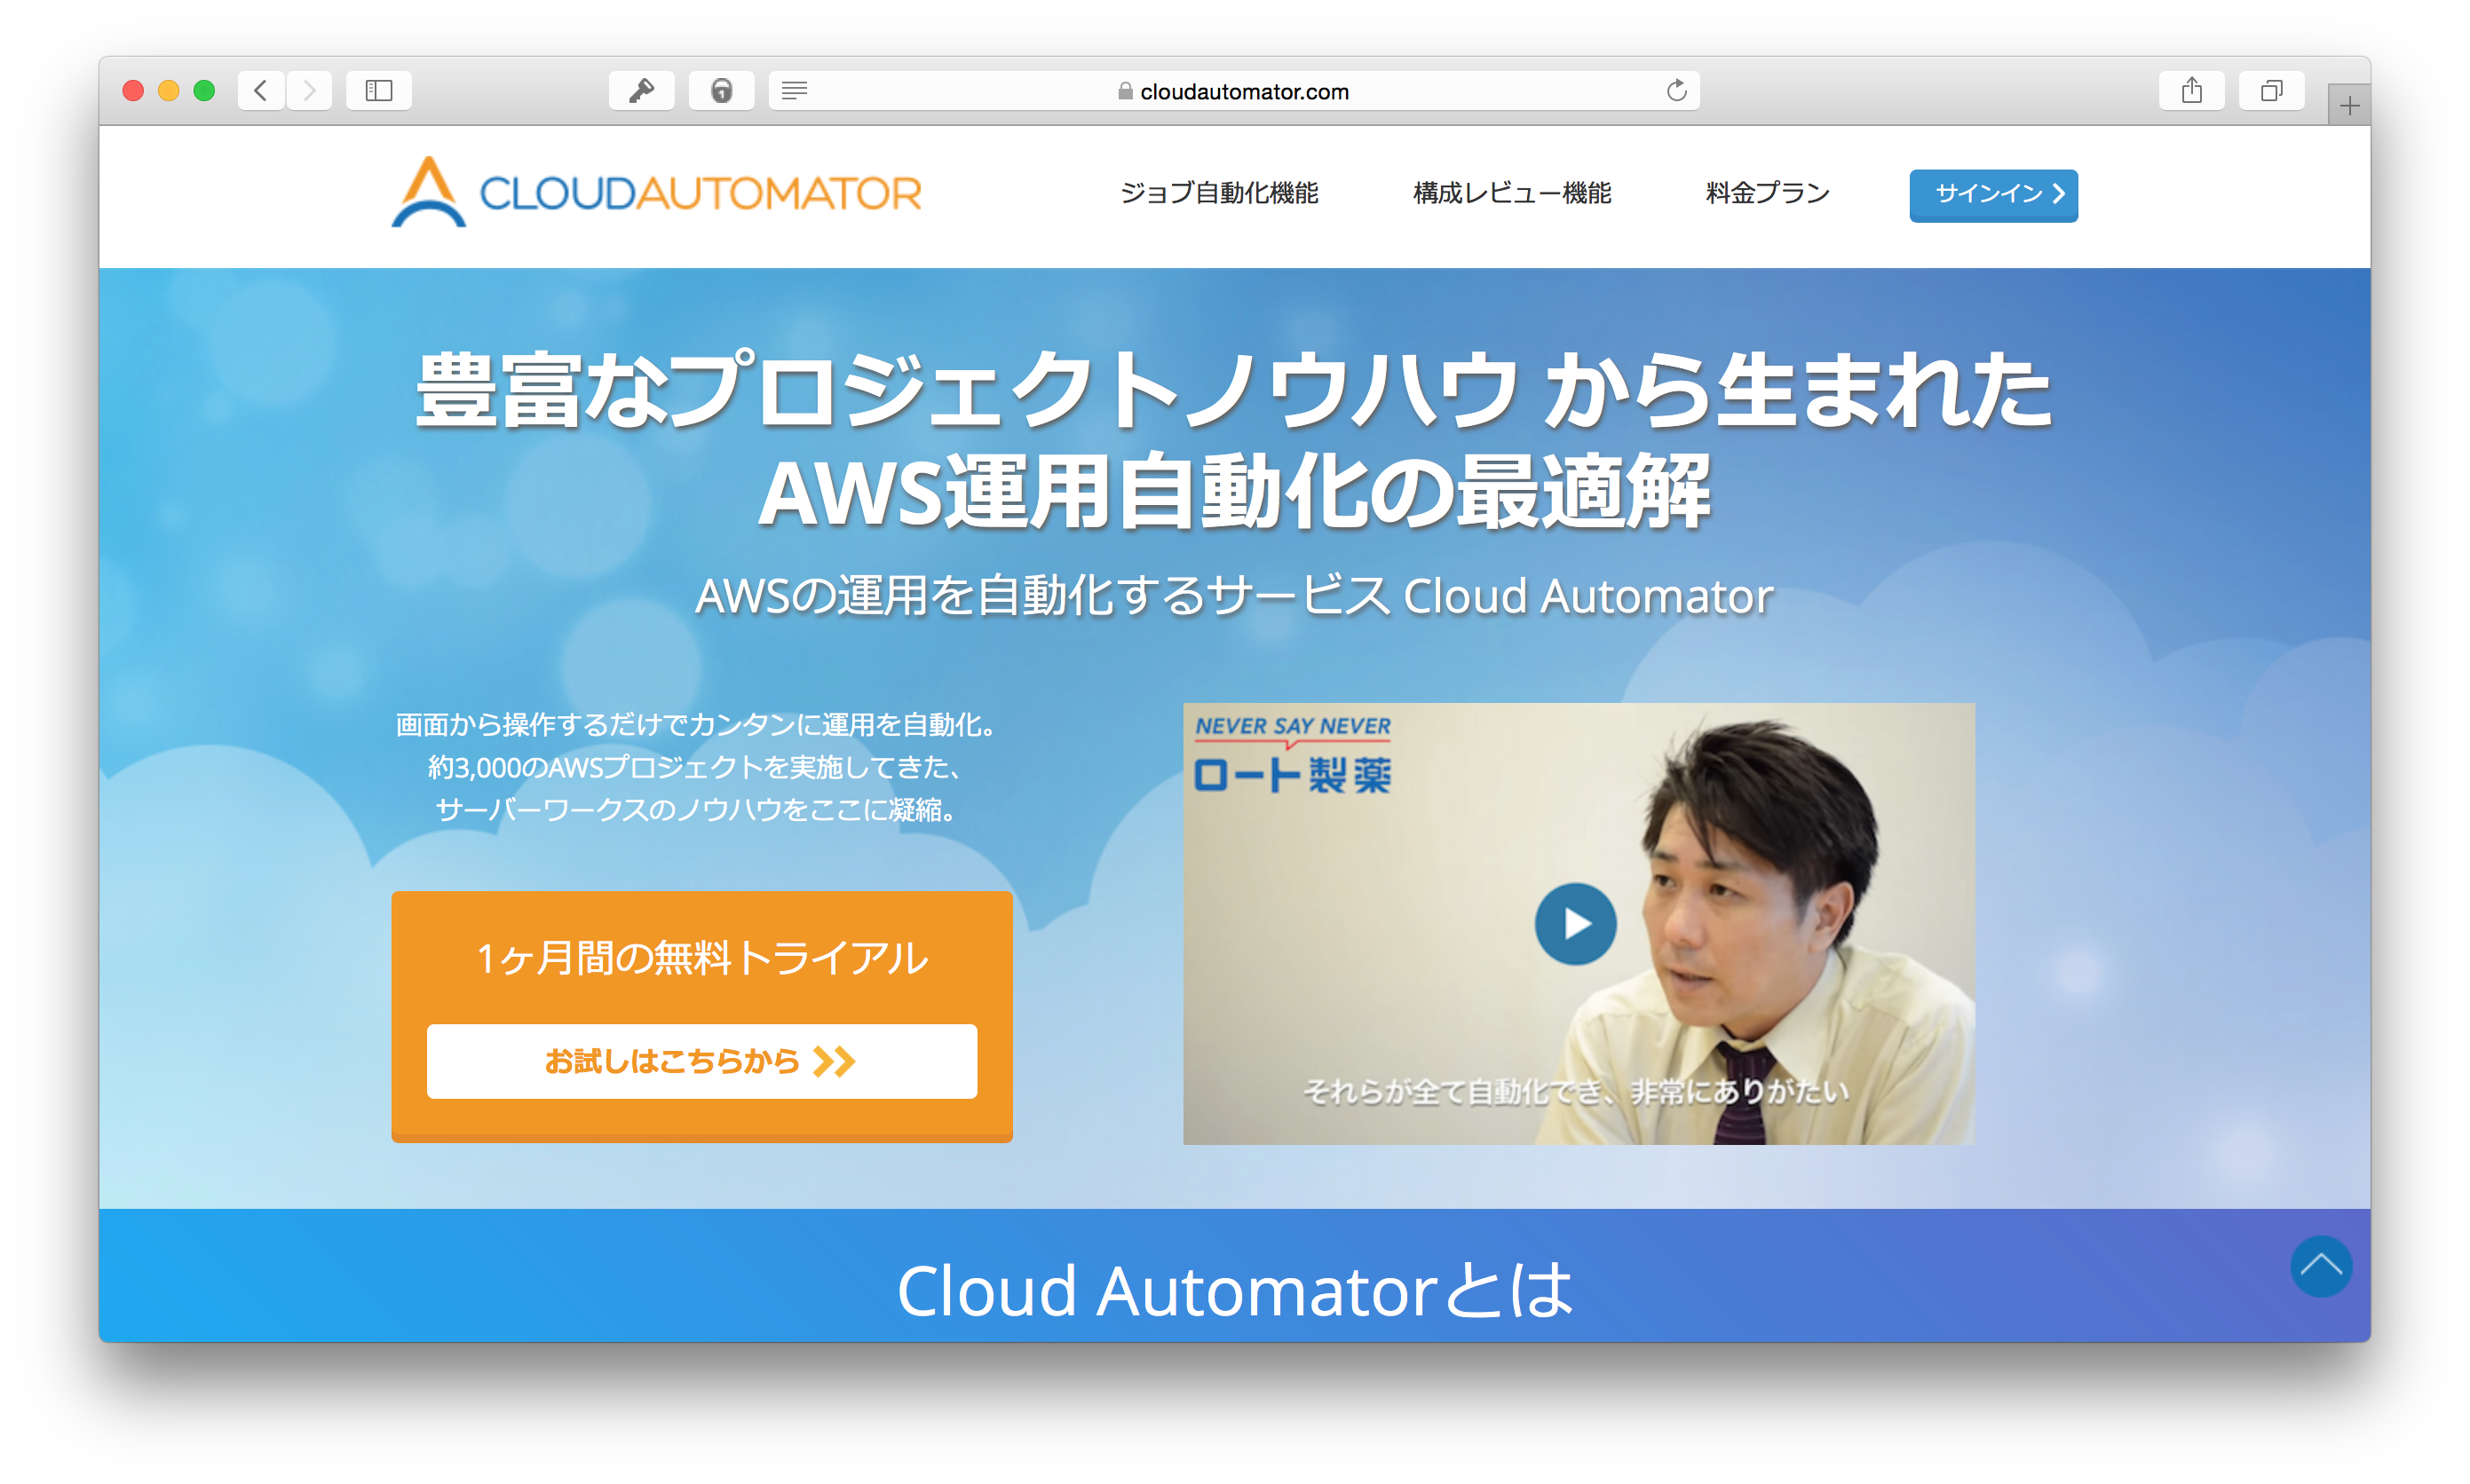 Cloud Automator renewal site